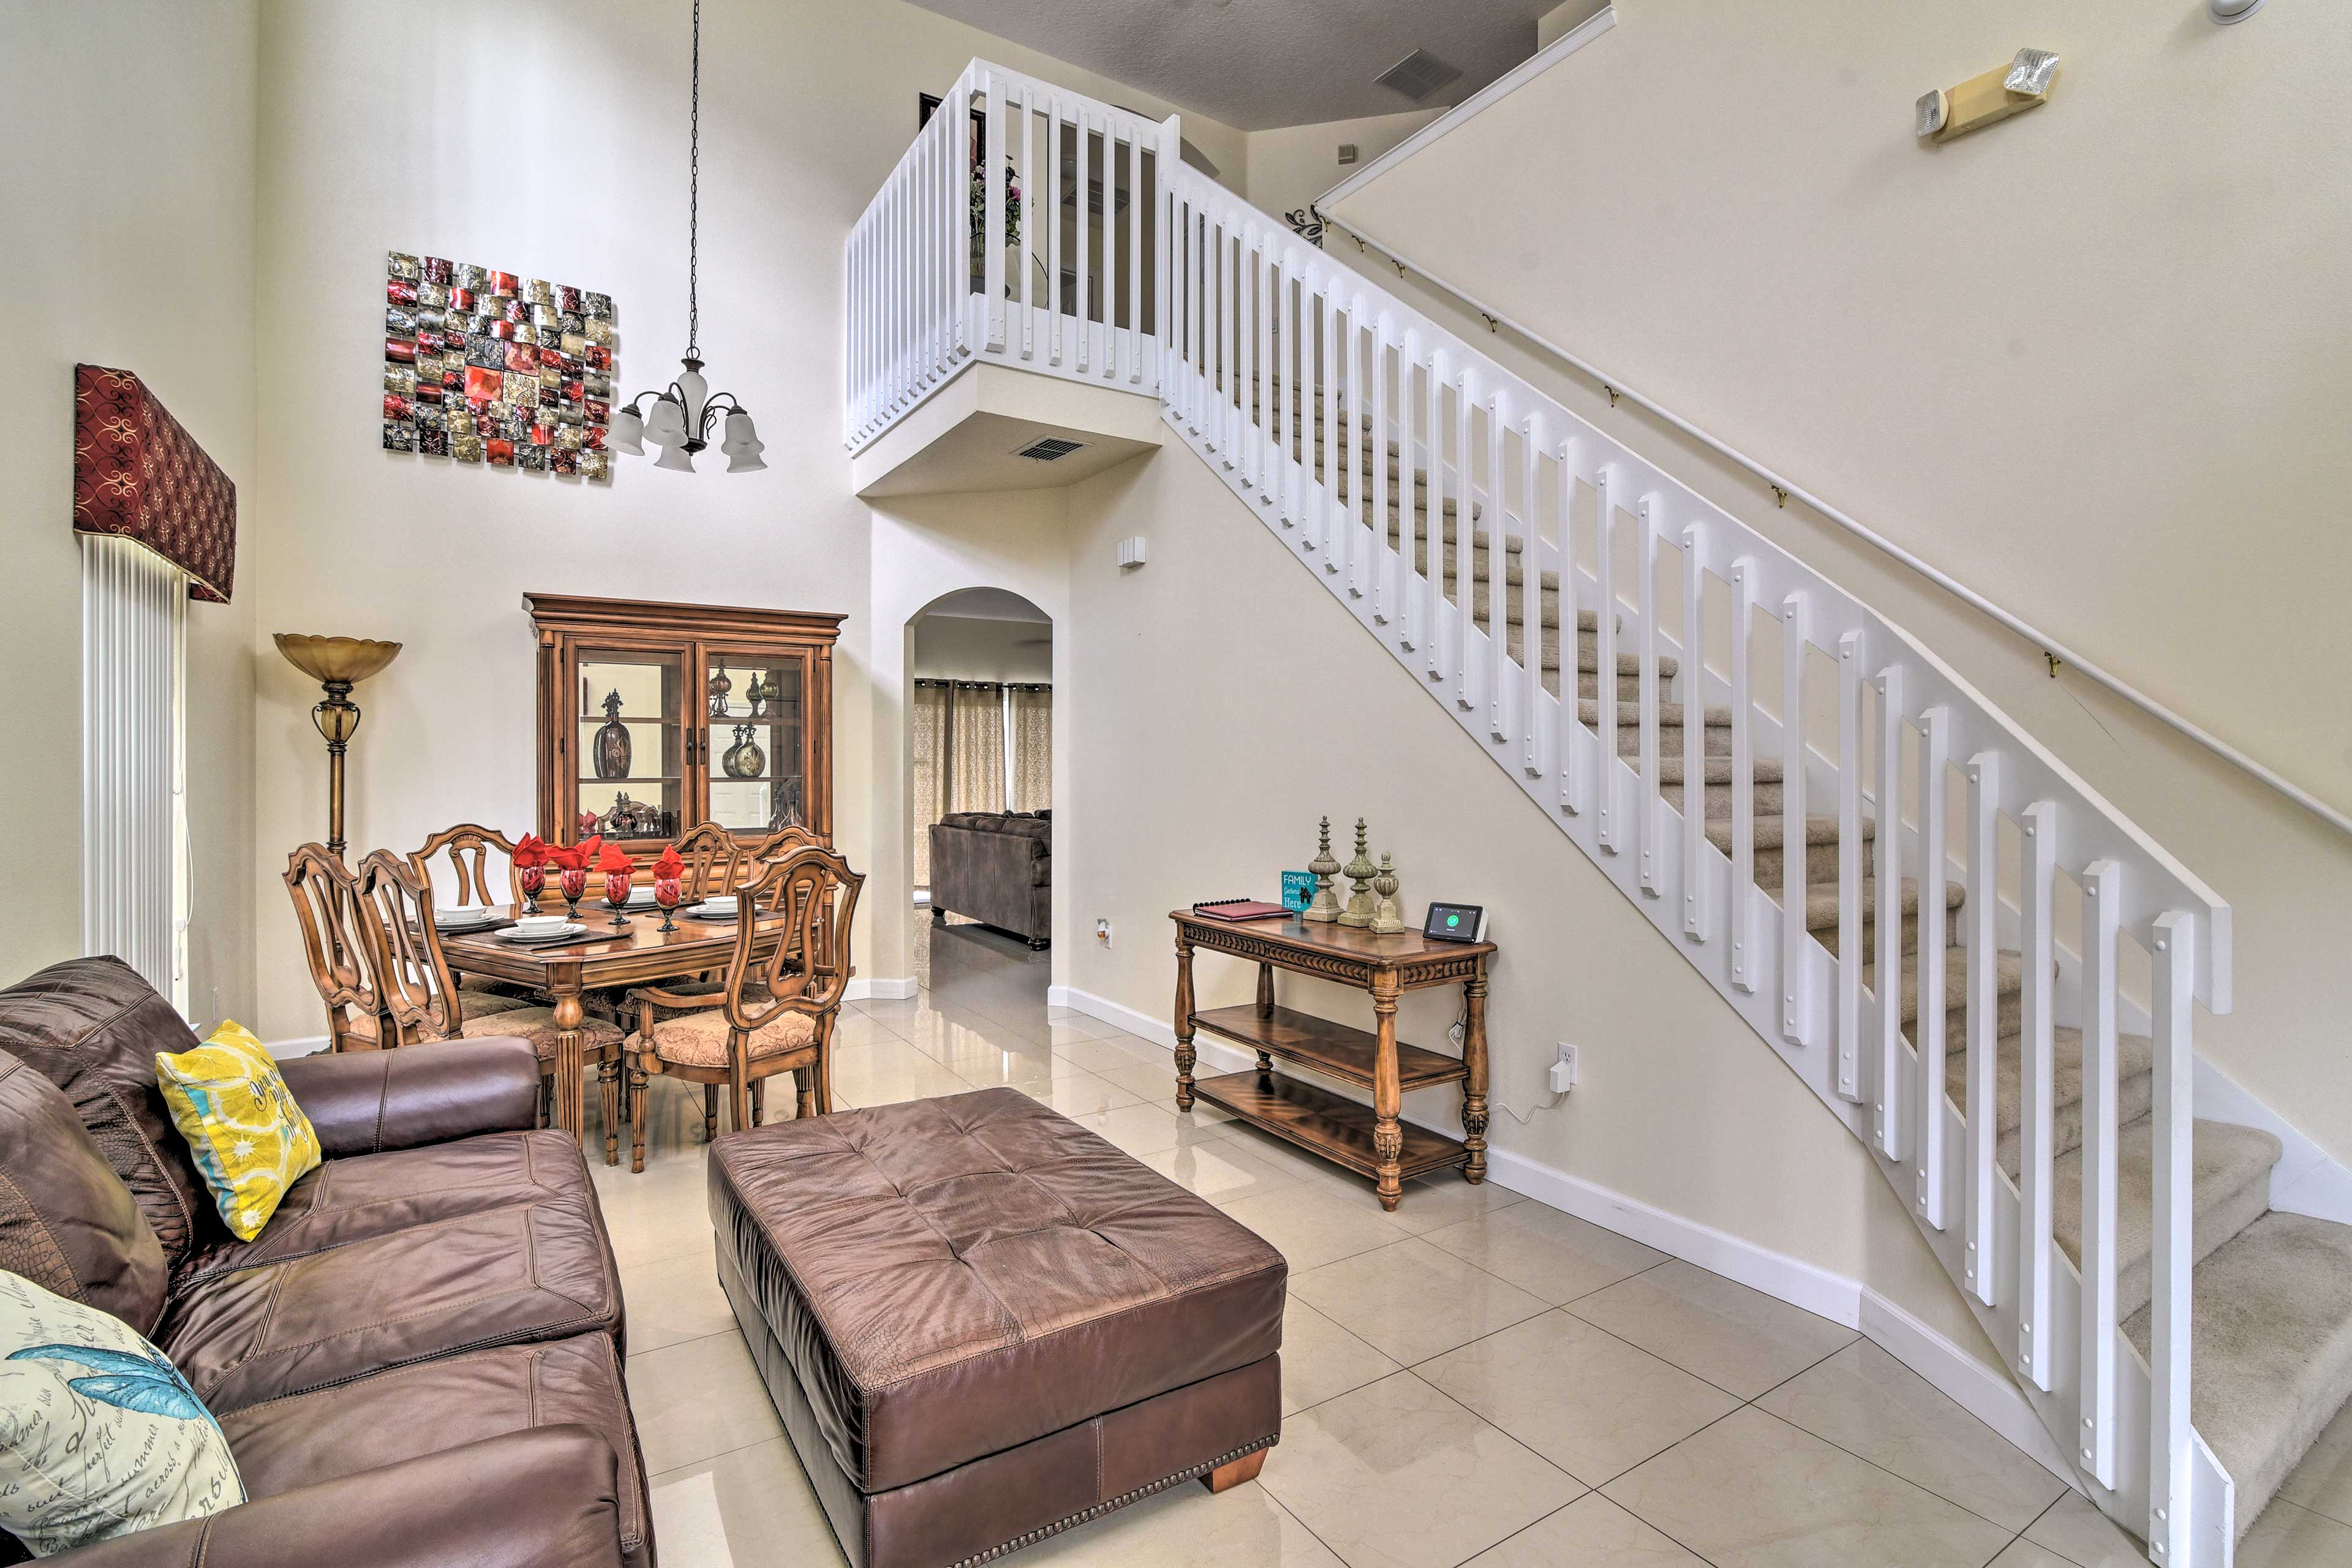 The spacious interior is beautifully appointed with elegant decor.